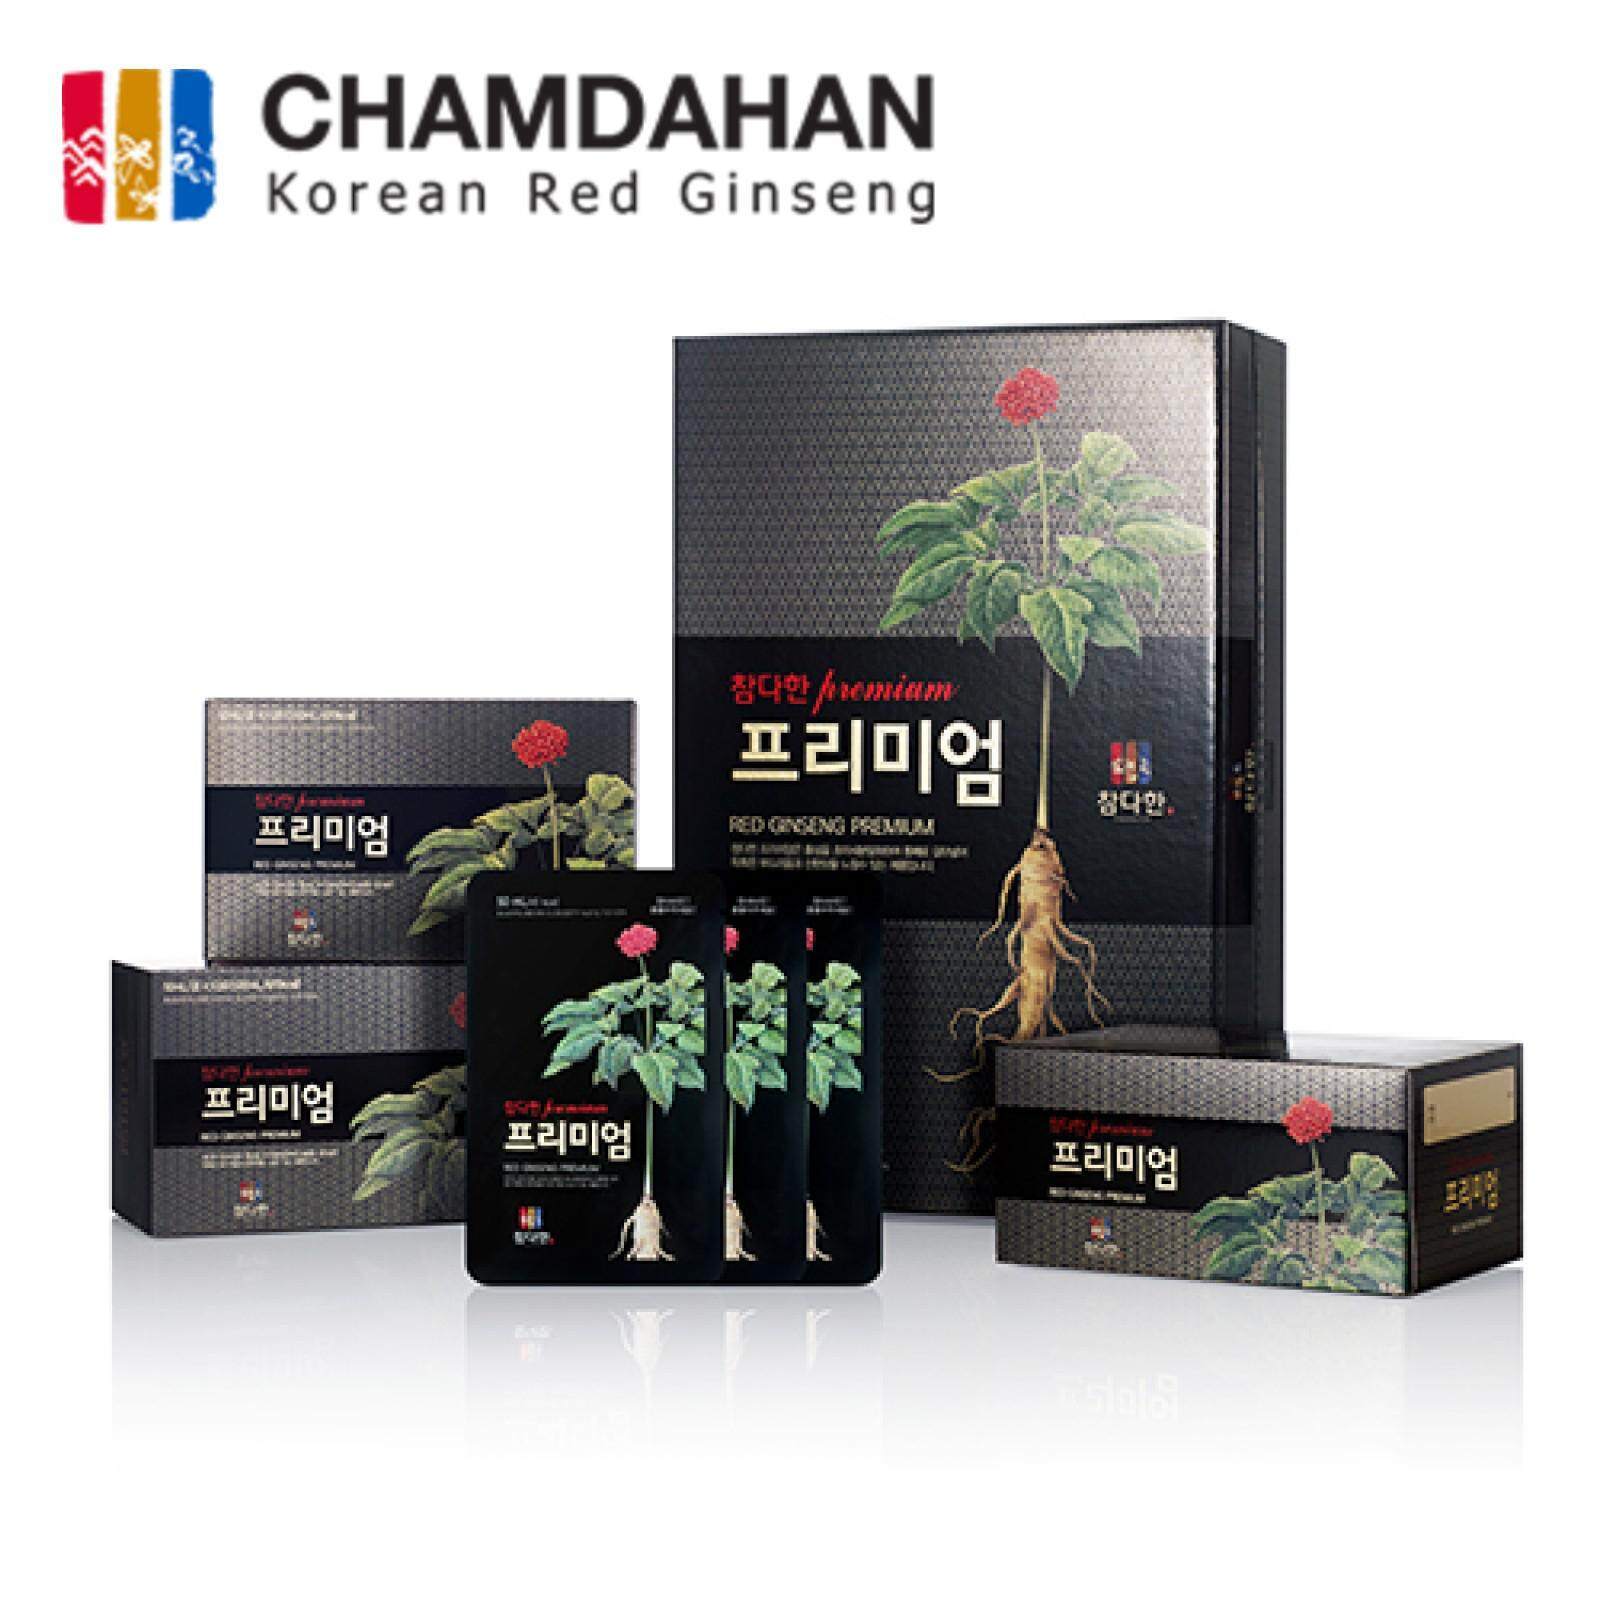 Chamdahan Korea Red Ginseng Drink Premium (1-months Supplies 30 pouches)